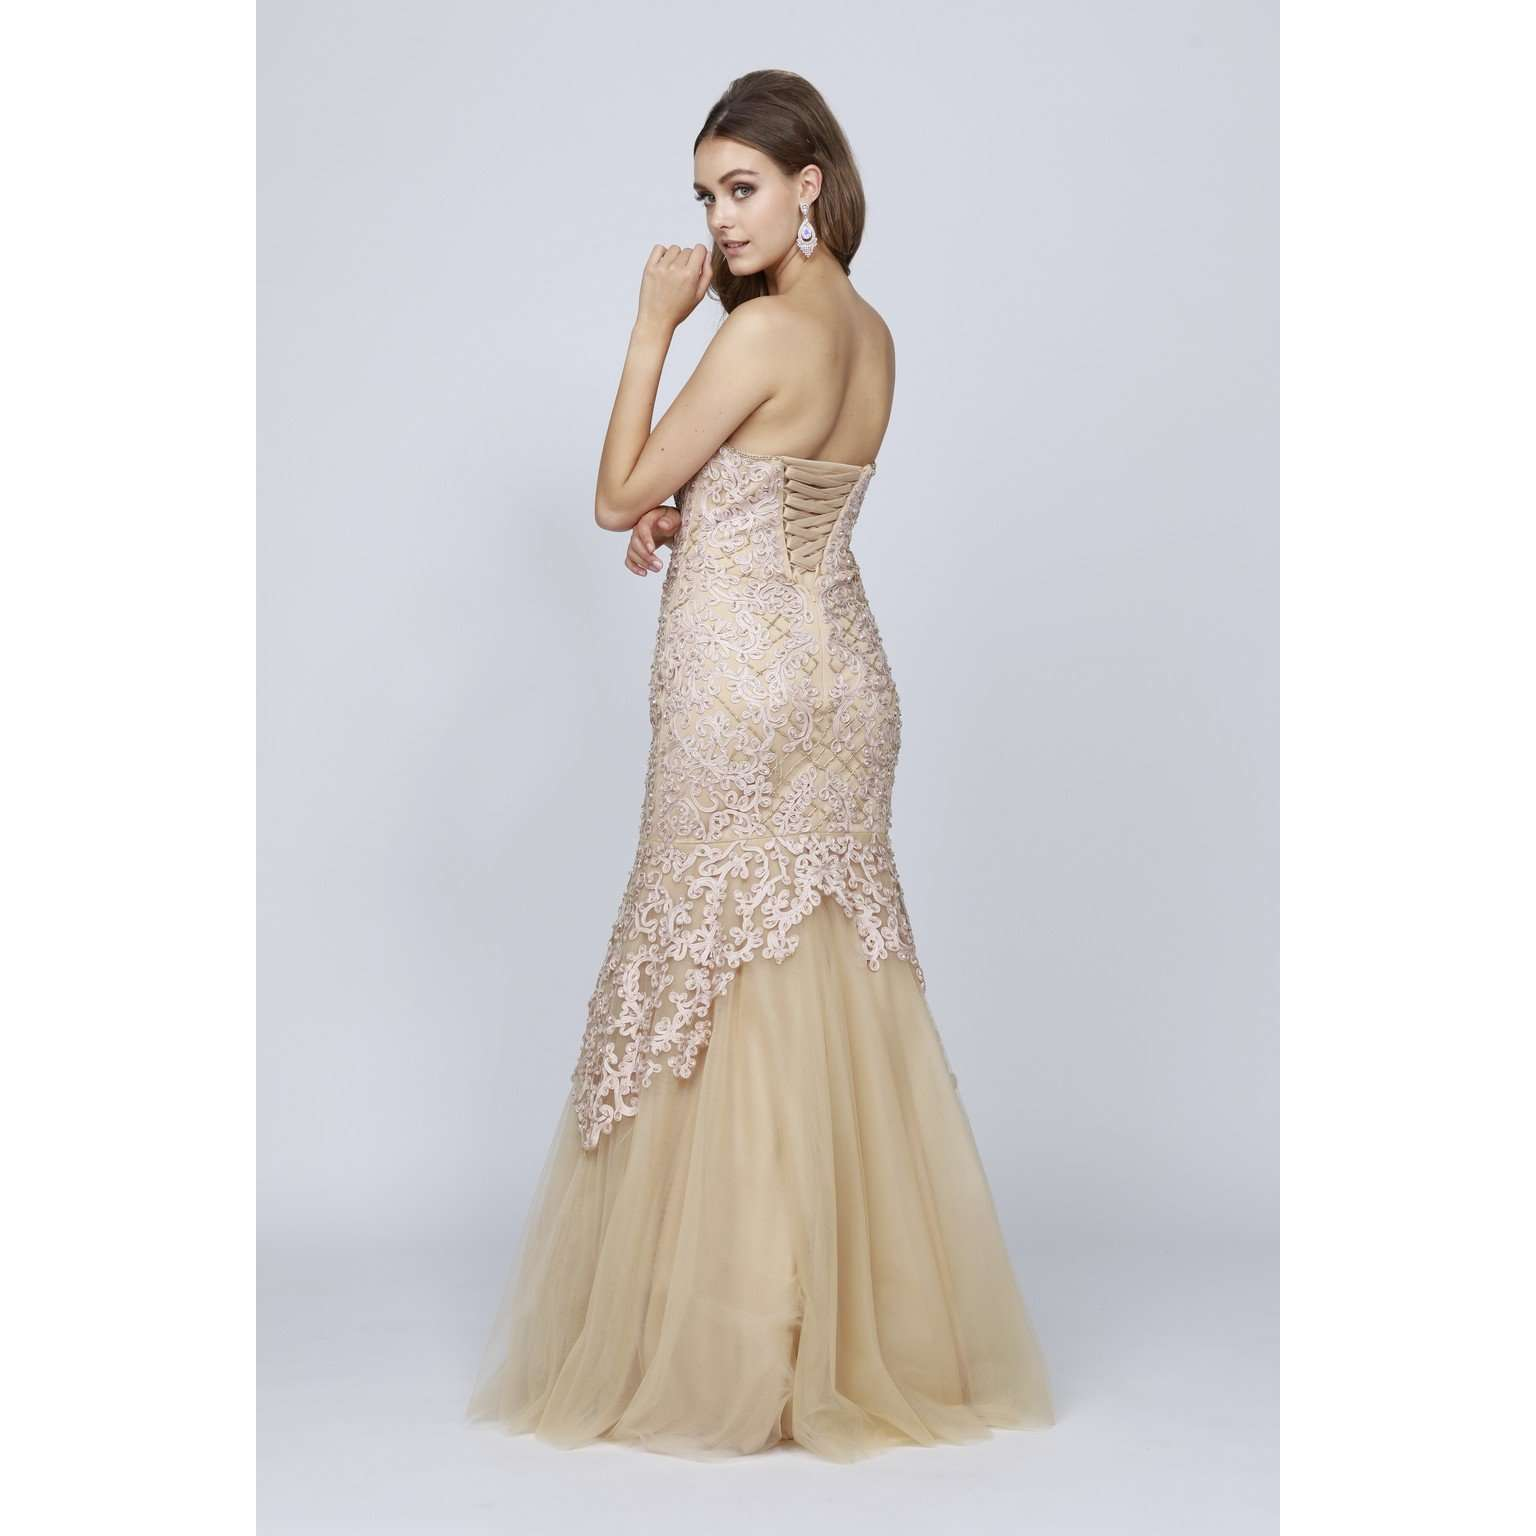 8d5e7c2c4f4 Beaded Embellished Lace Mermaid Prom Dress 644 – Julietdresses